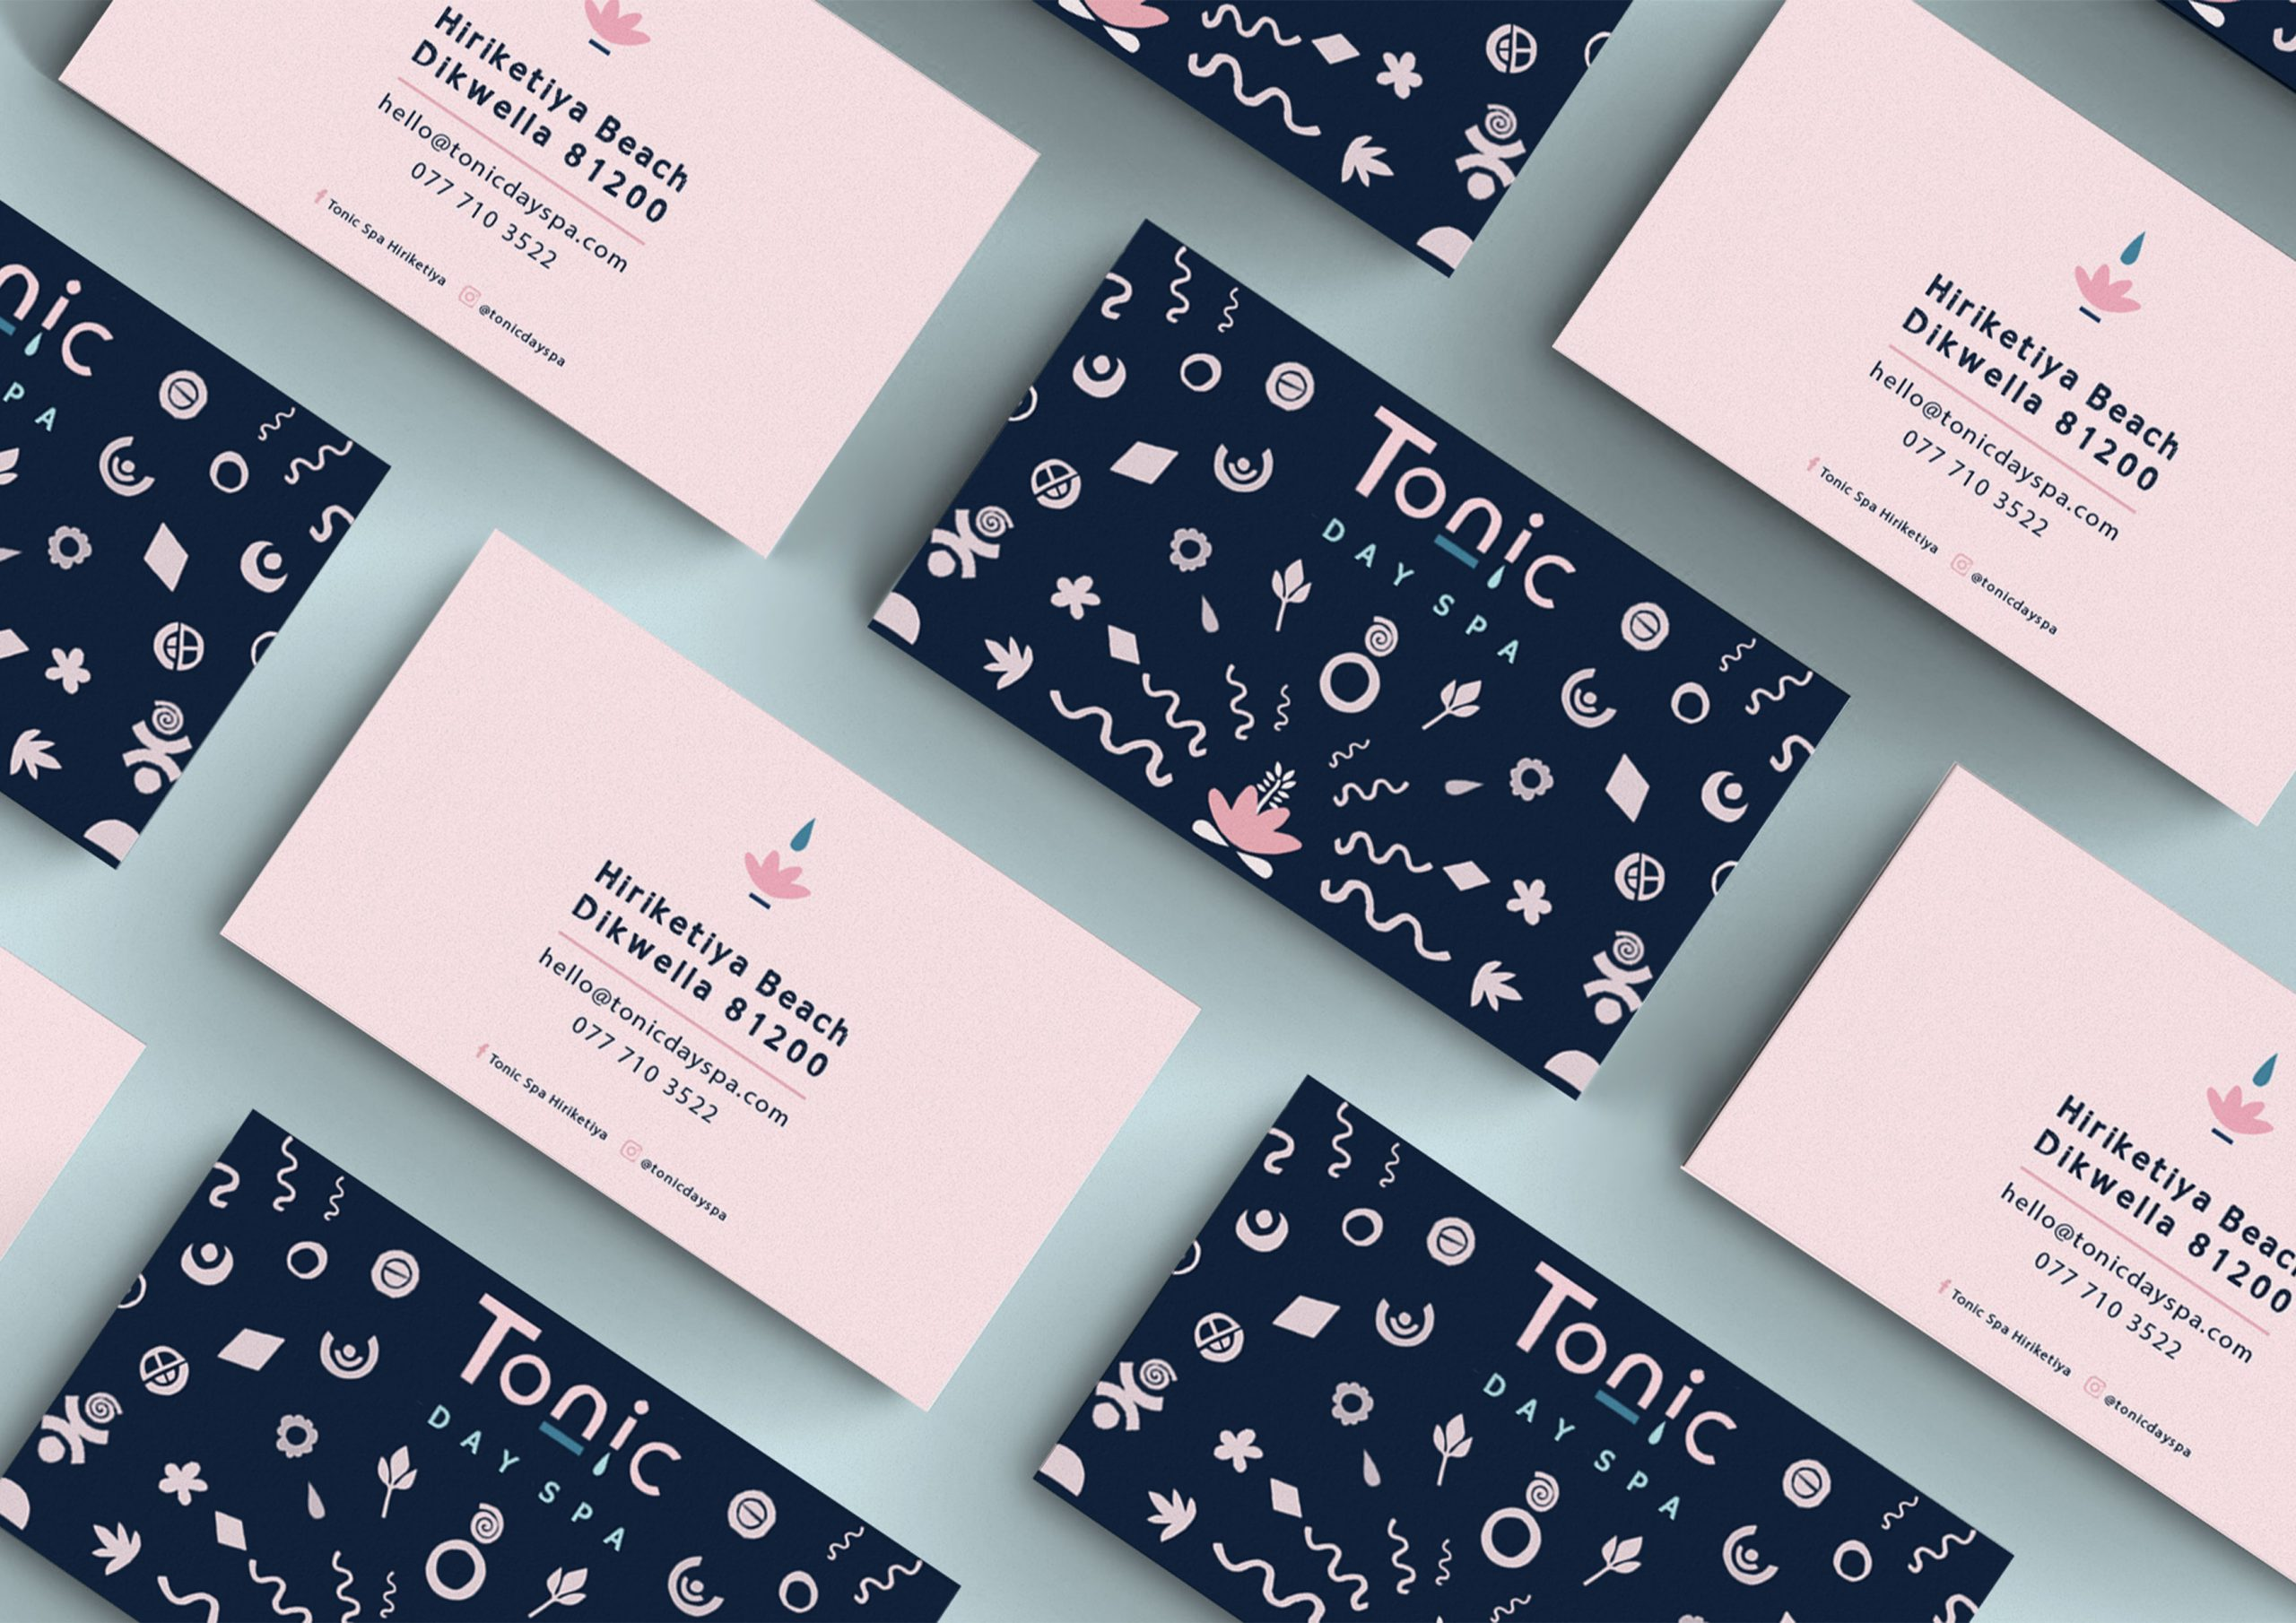 Tonic Day Spa business cards